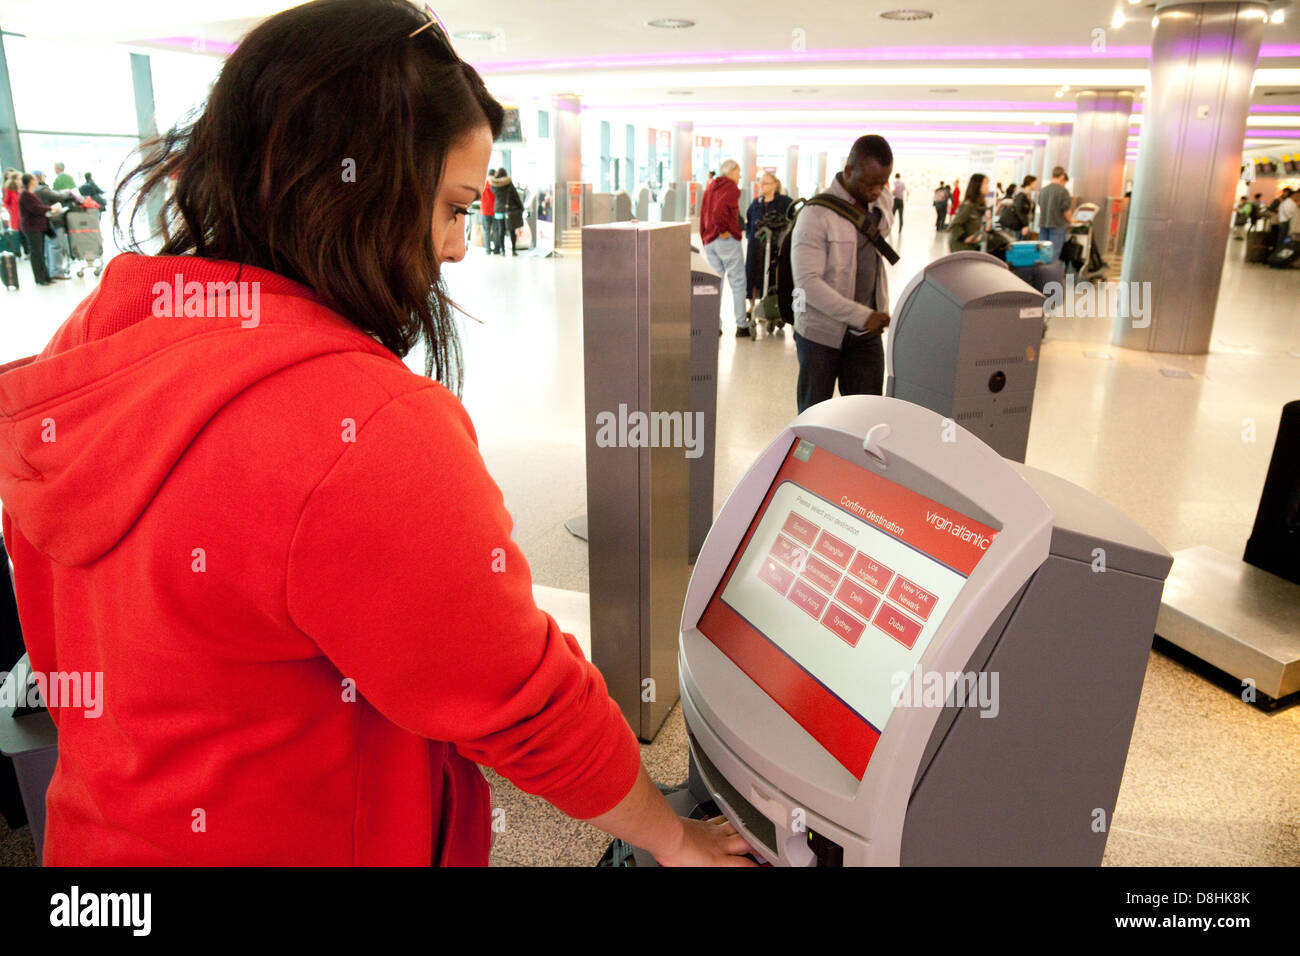 Young woman doing automated check in with Virgin Atlantic